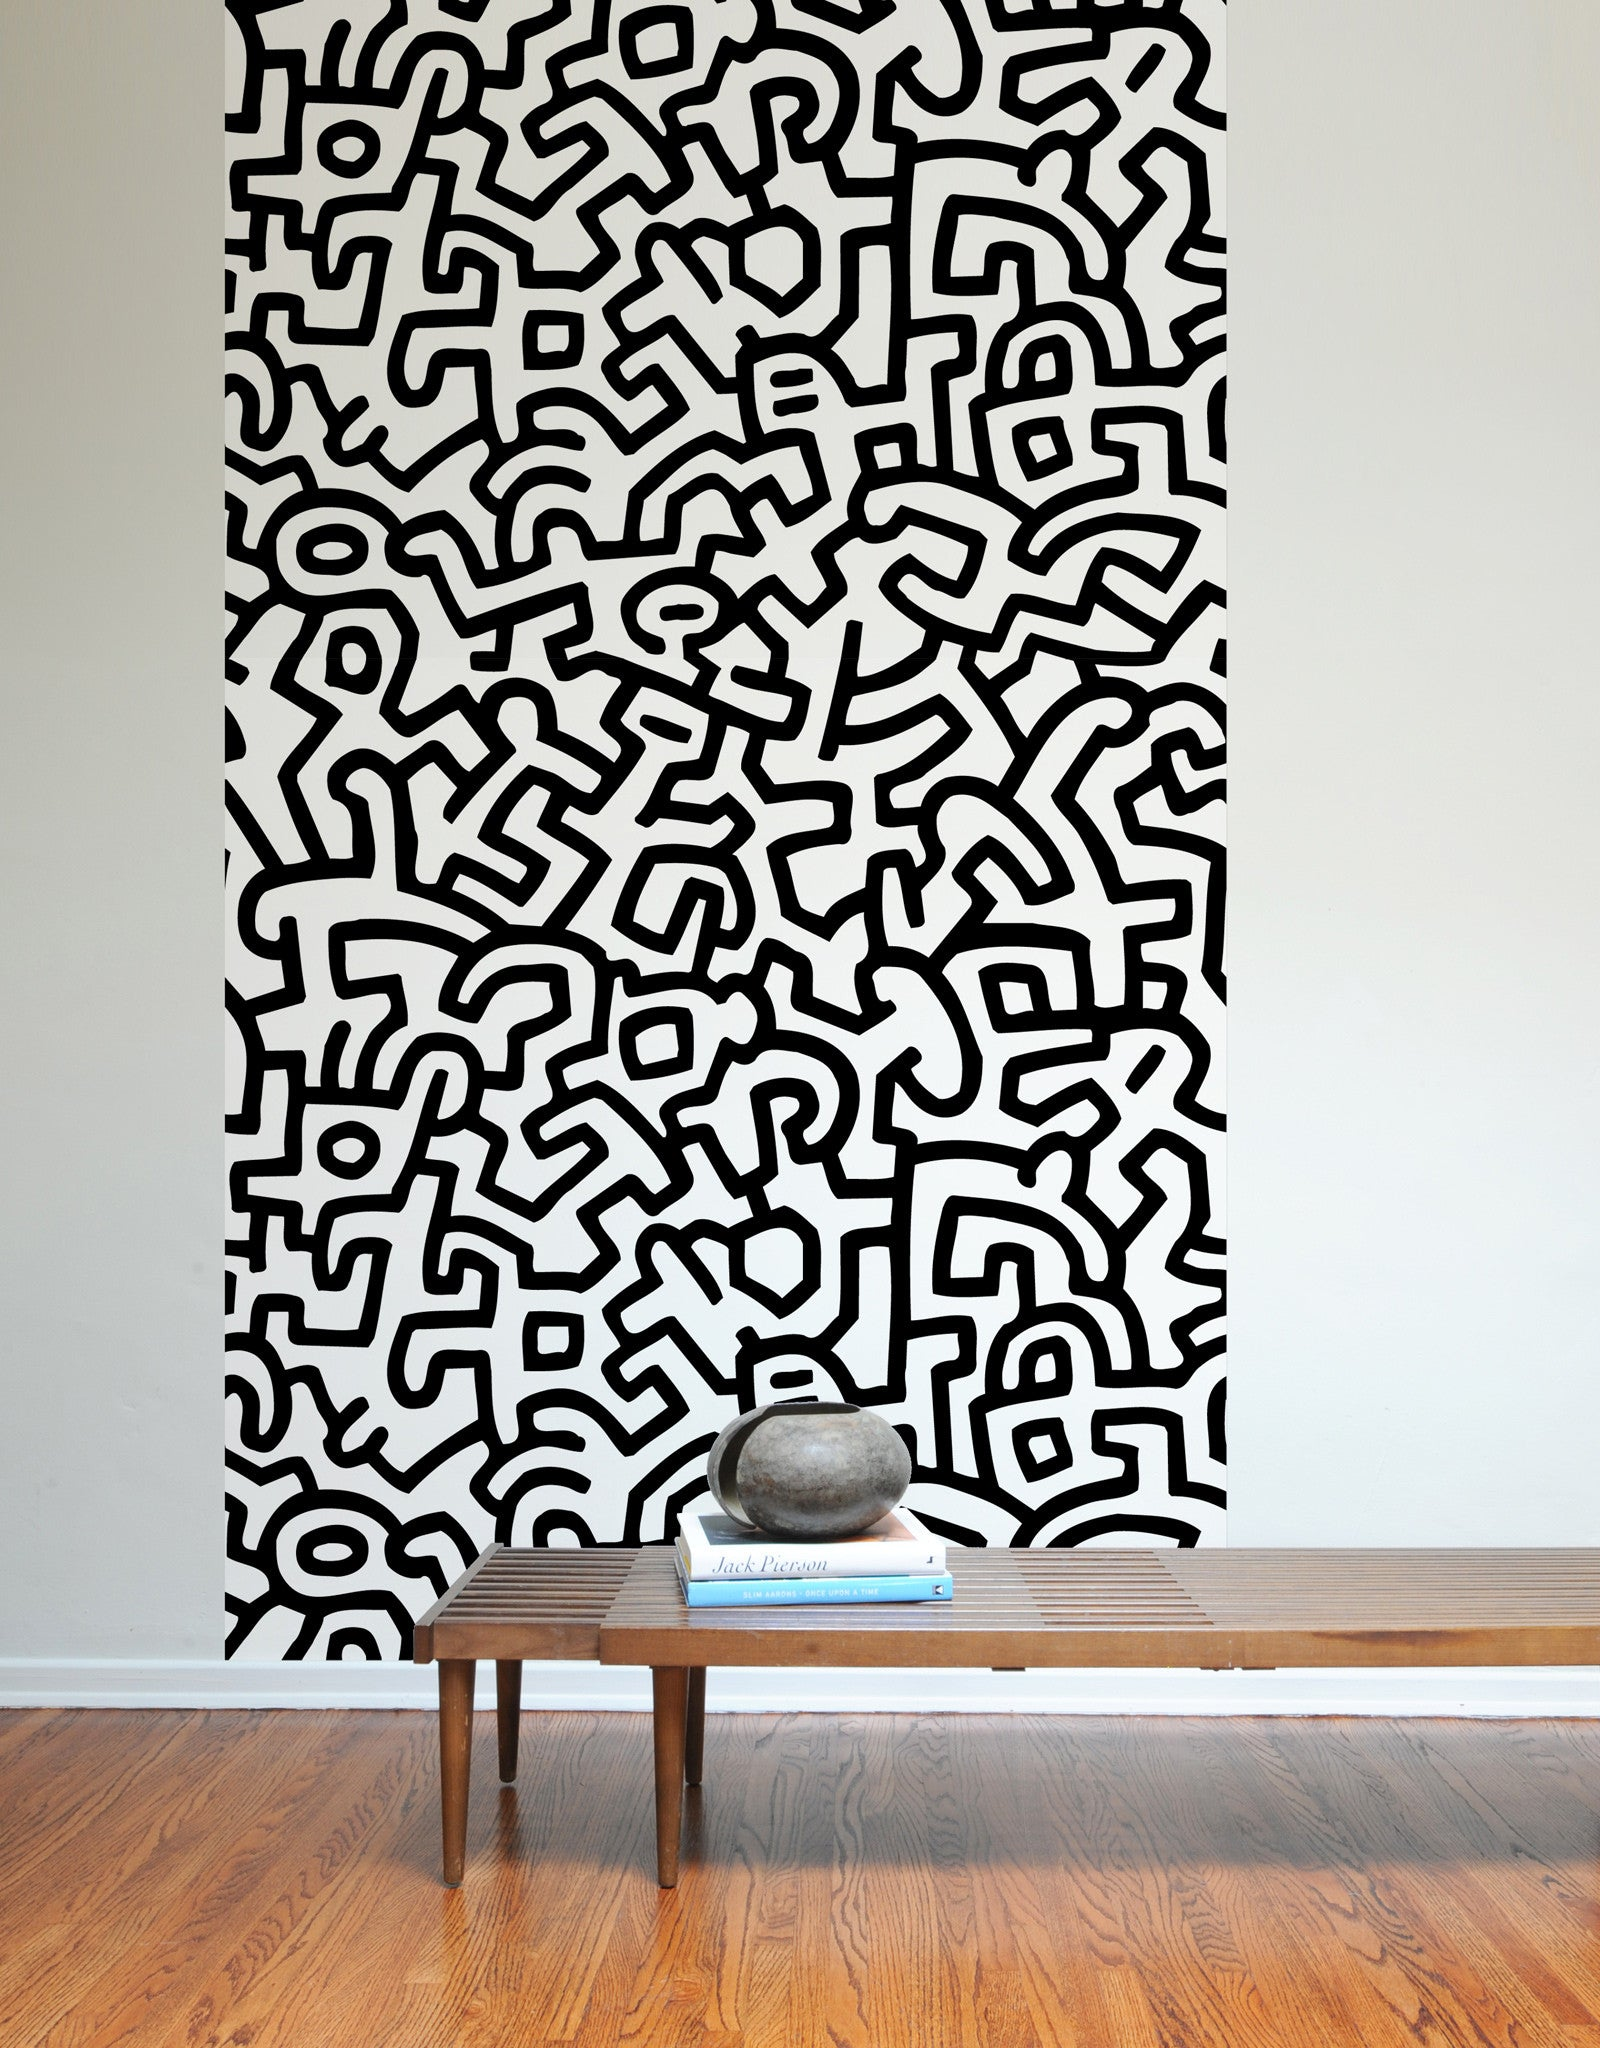 Keith Haring Adhesive Wall Tiles Stick On Wall Tiles Blik